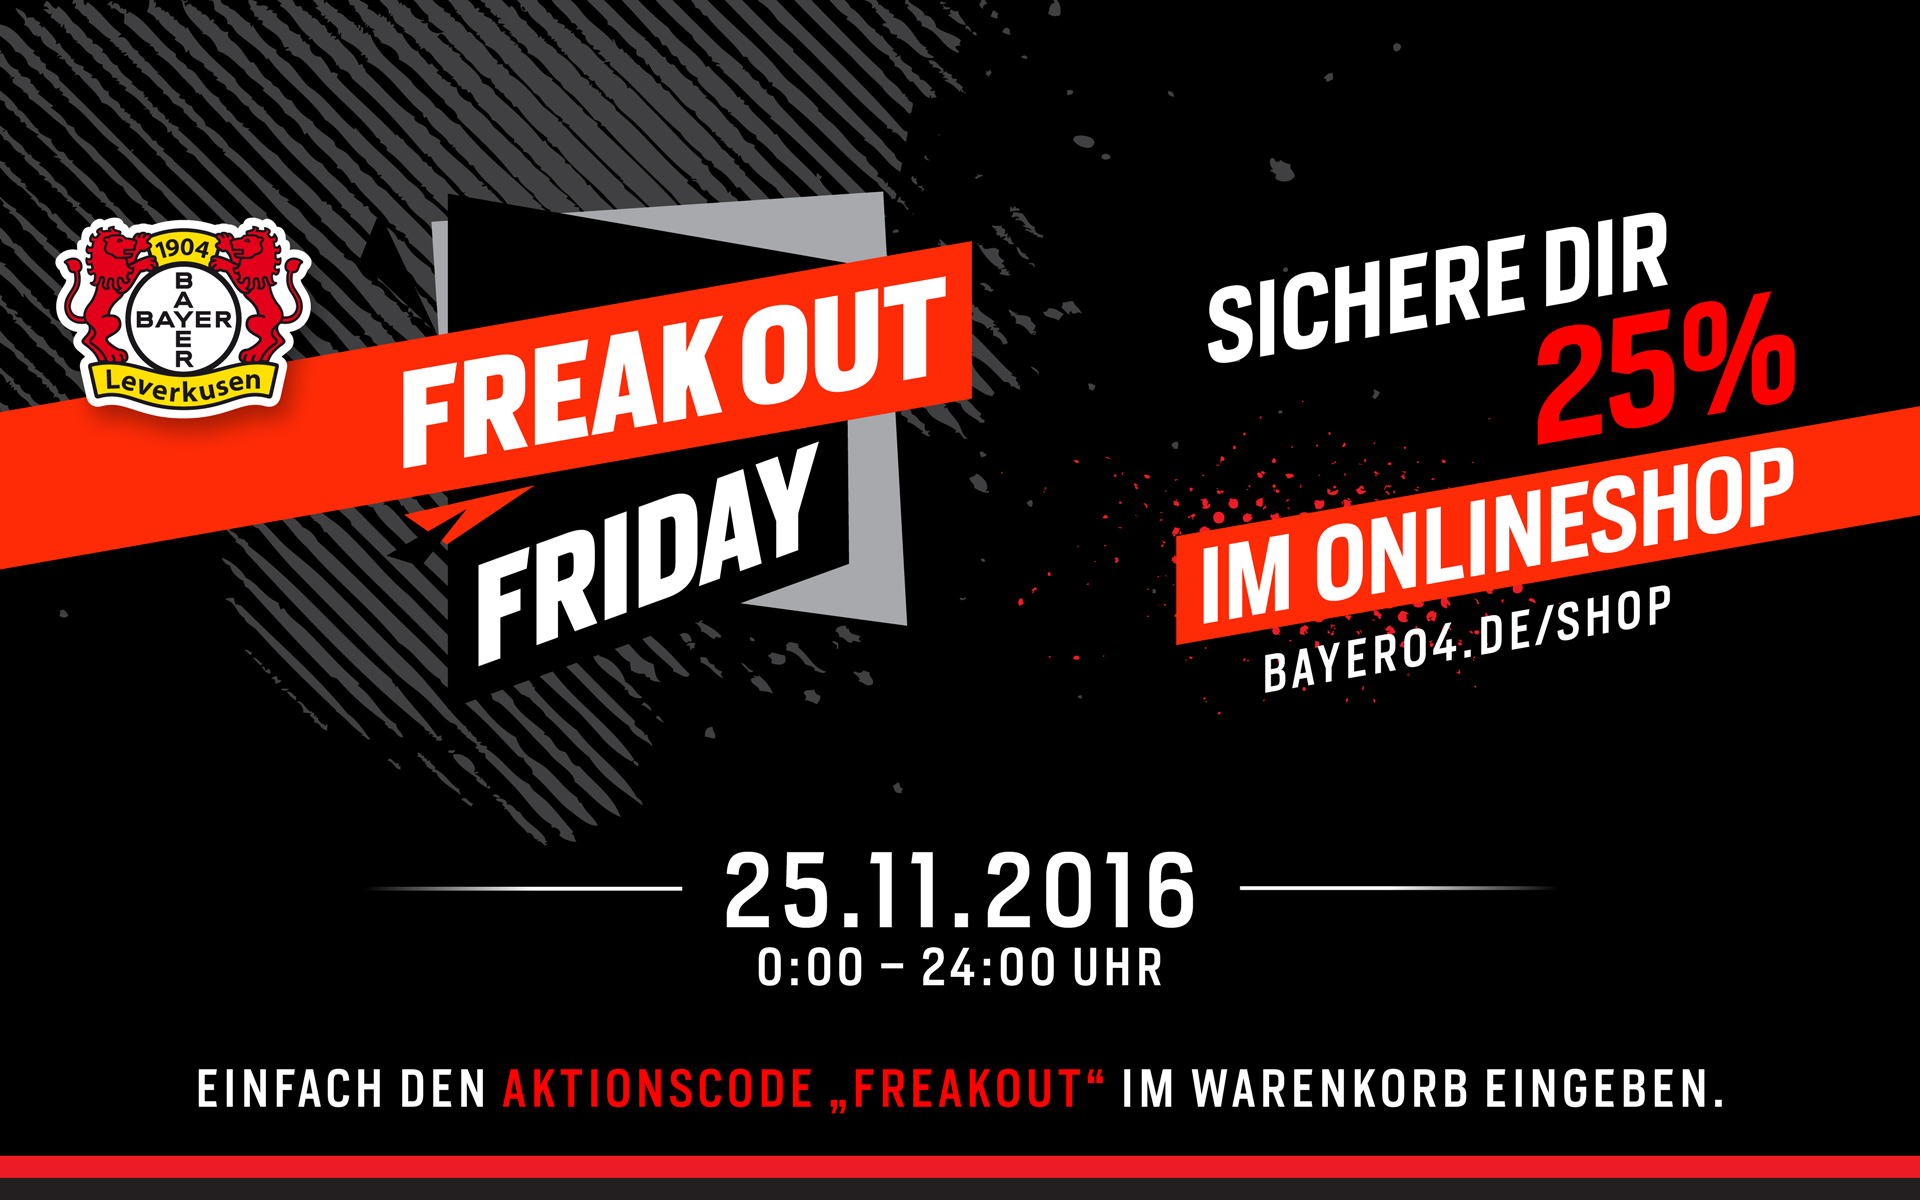 "Saleskampagne ""Freakout Friday"", Bayer 04 Leverkusen, Markenkommunikation, Corporate Design, Motiv"